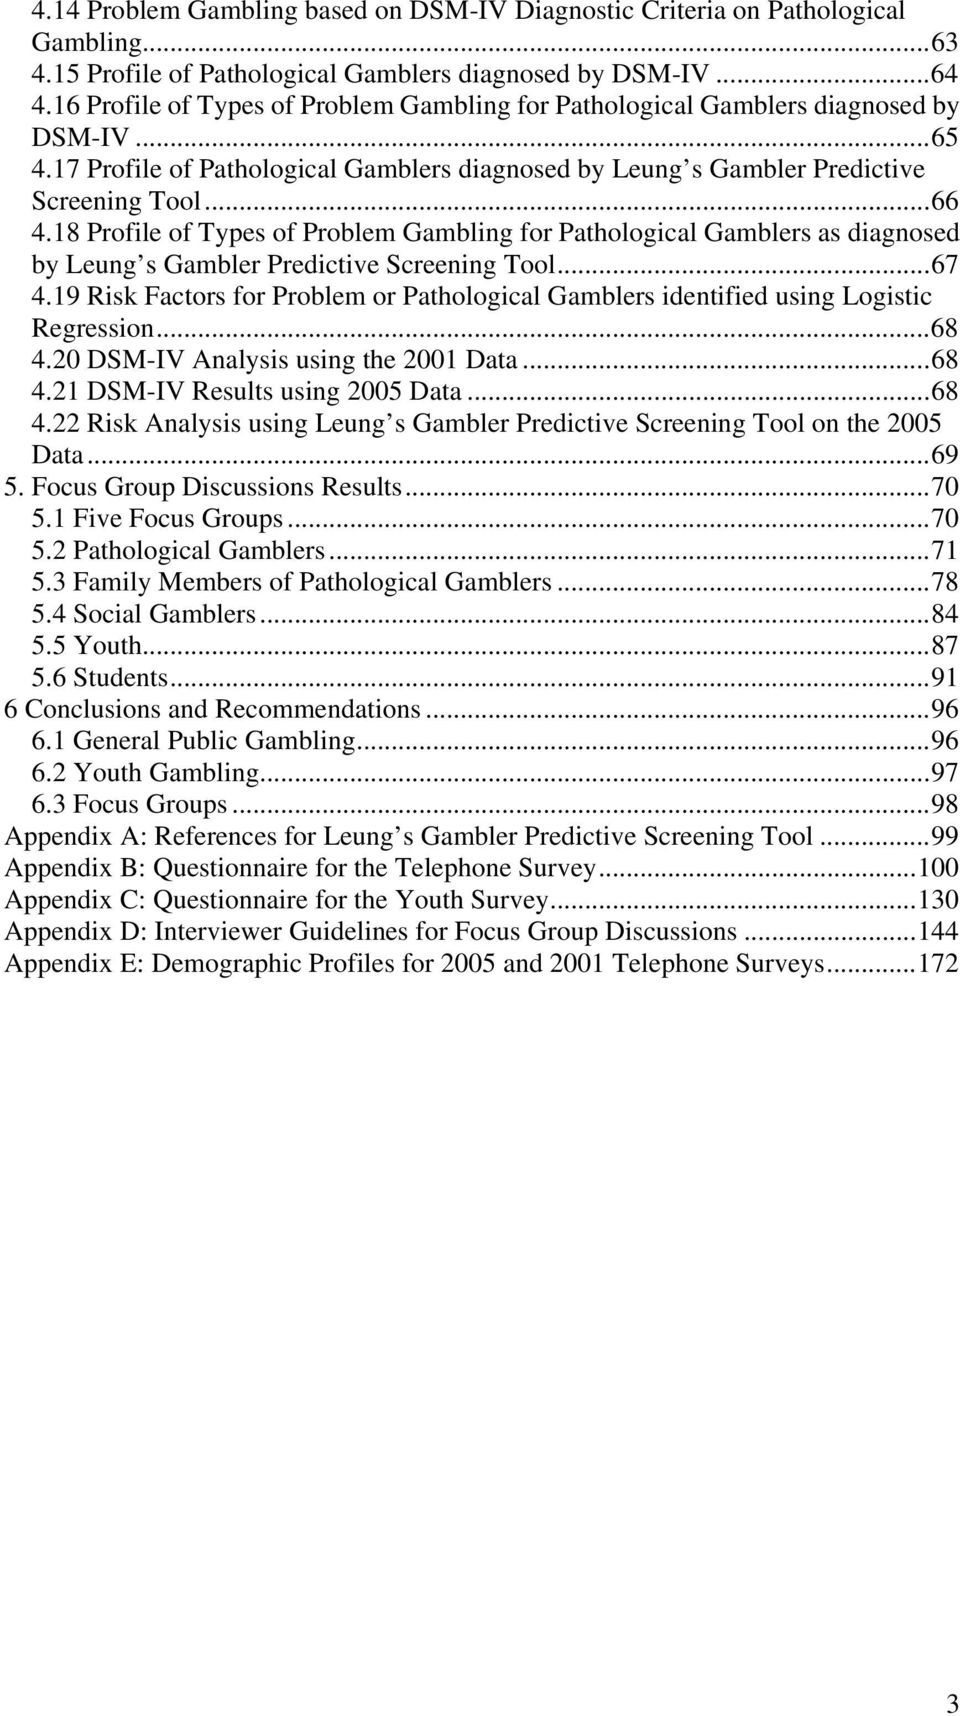 18 Profile of Types of Problem Gambling for Pathological Gamblers as diagnosed by Leung s Gambler Predictive Screening Tool...67 4.